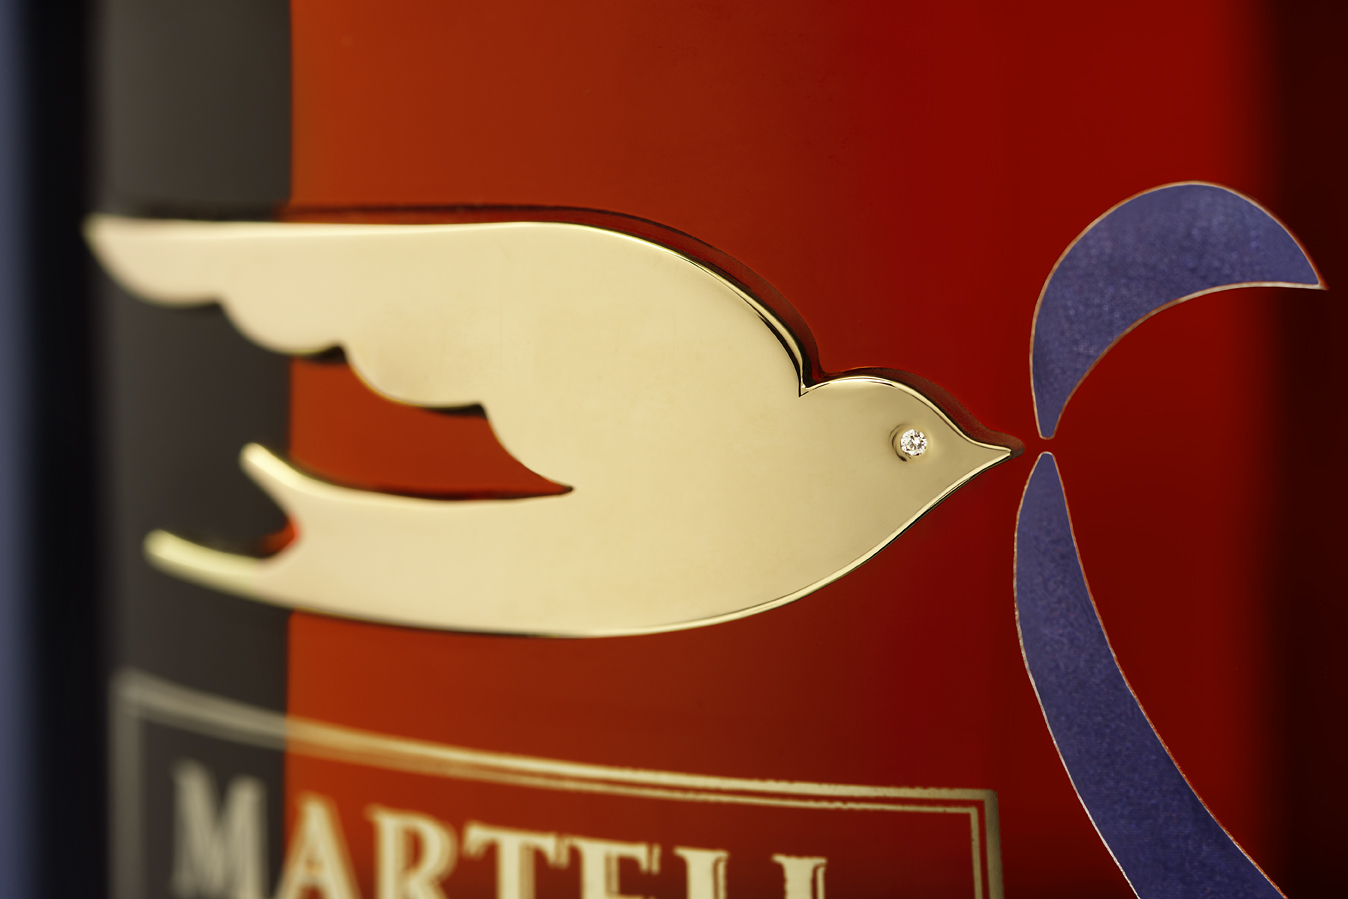 boucheron-martell-bottle